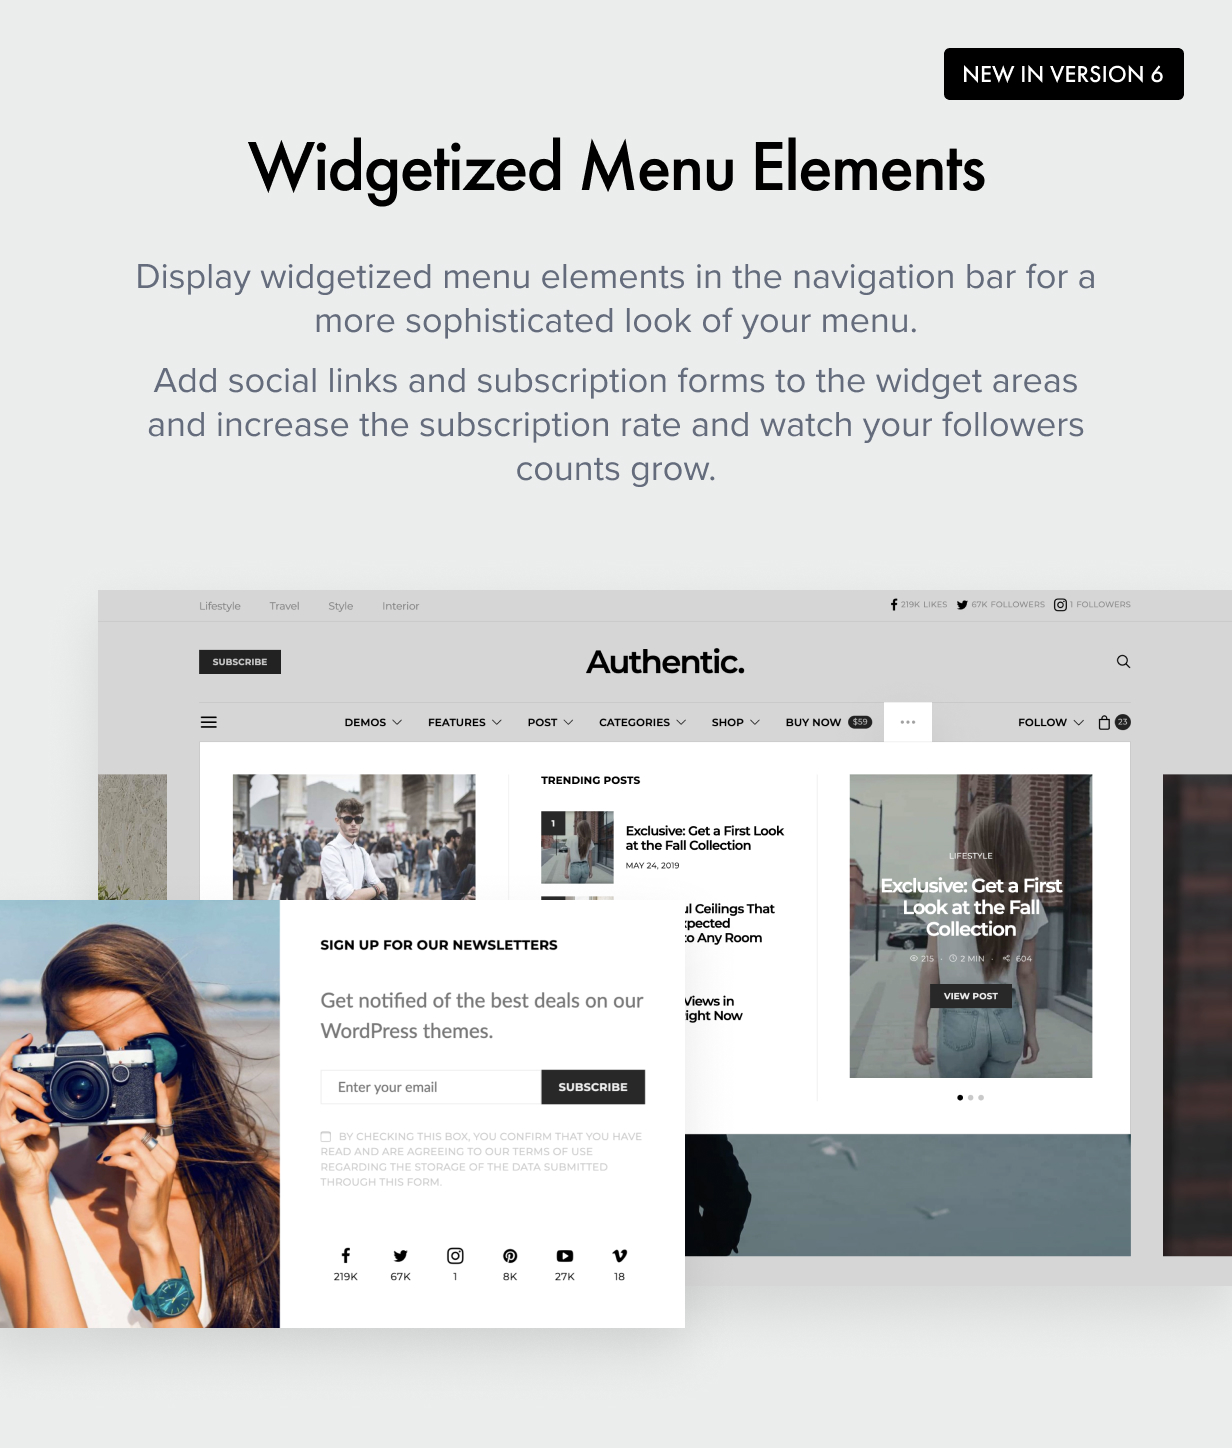 Widgetized Menu Elements